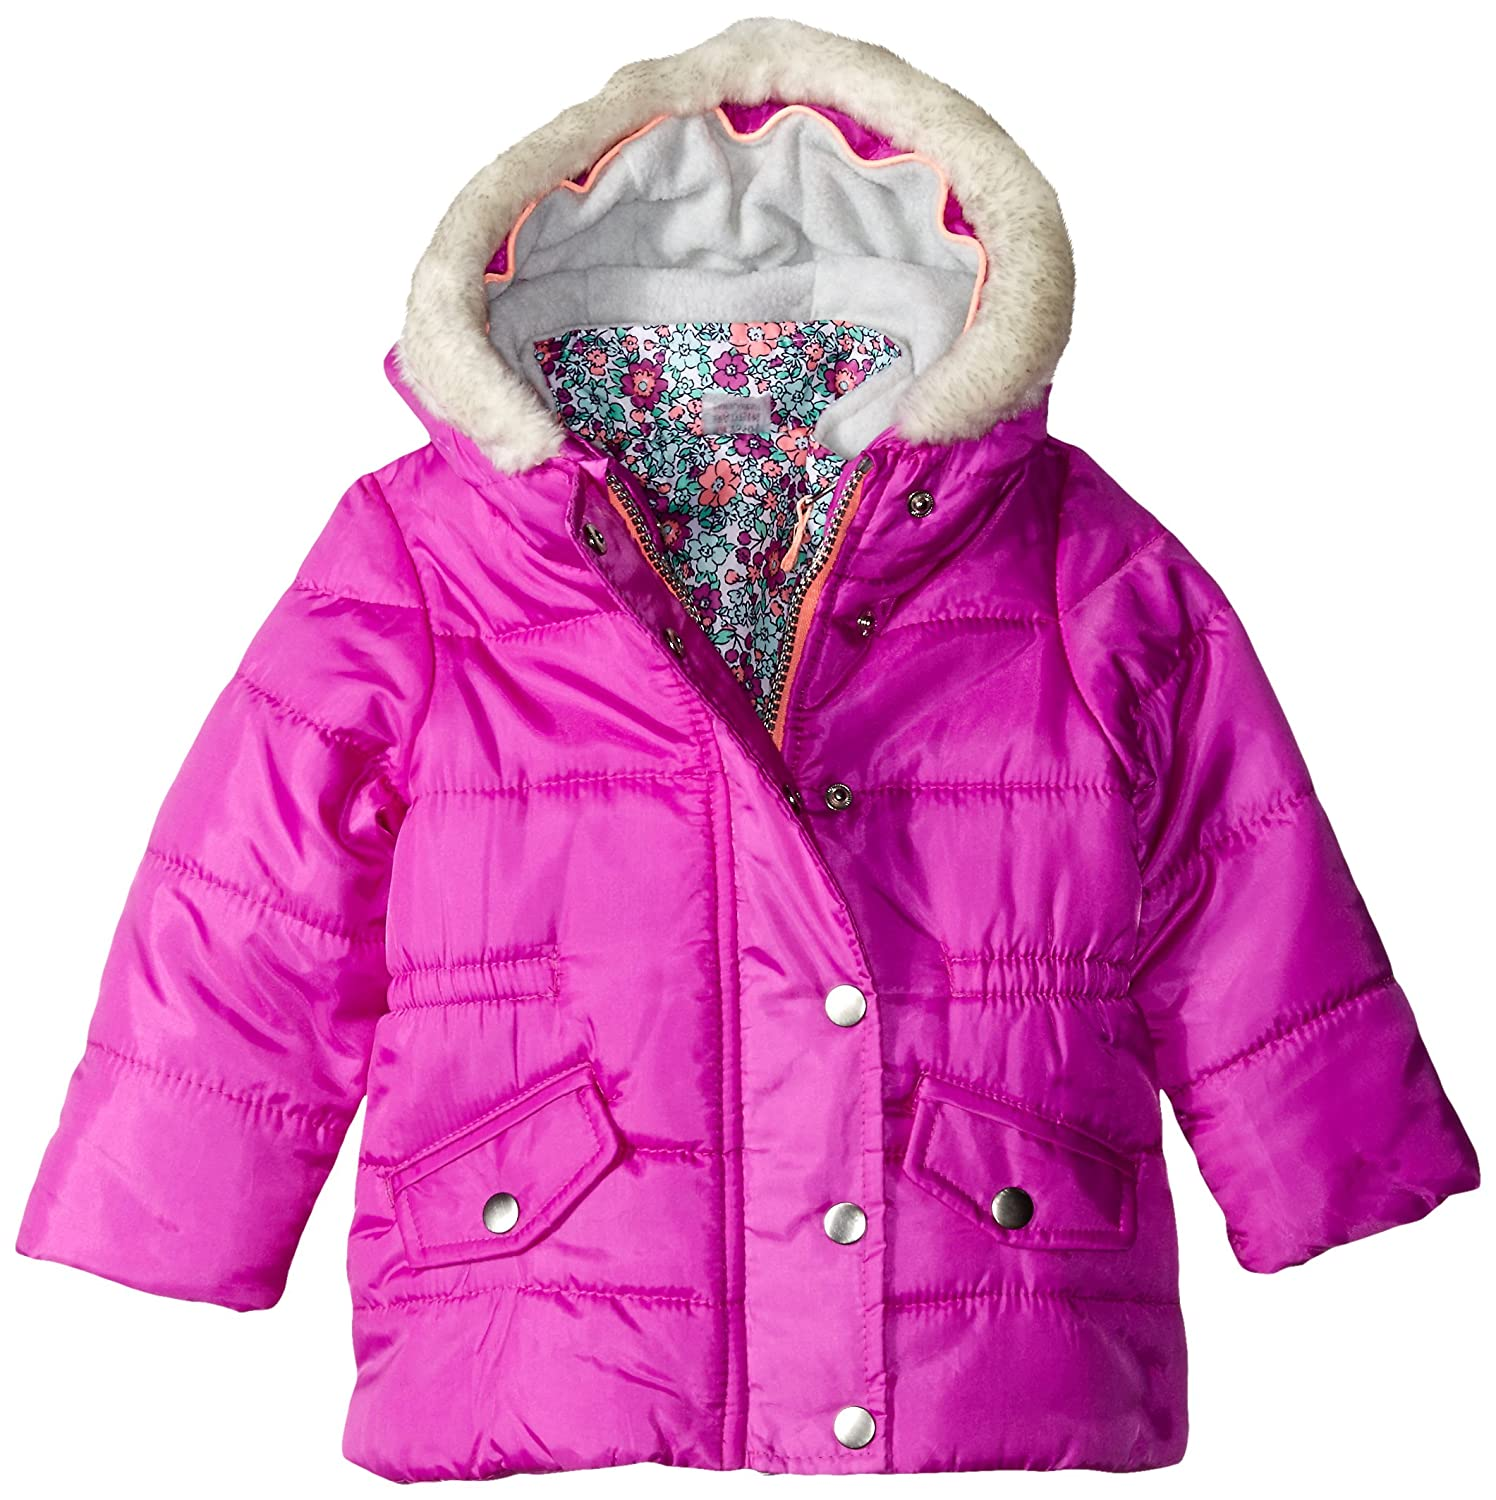 f1a93c6b0 Amazon.com  Carter s Baby Girls  Heavyweight Systems Jacket